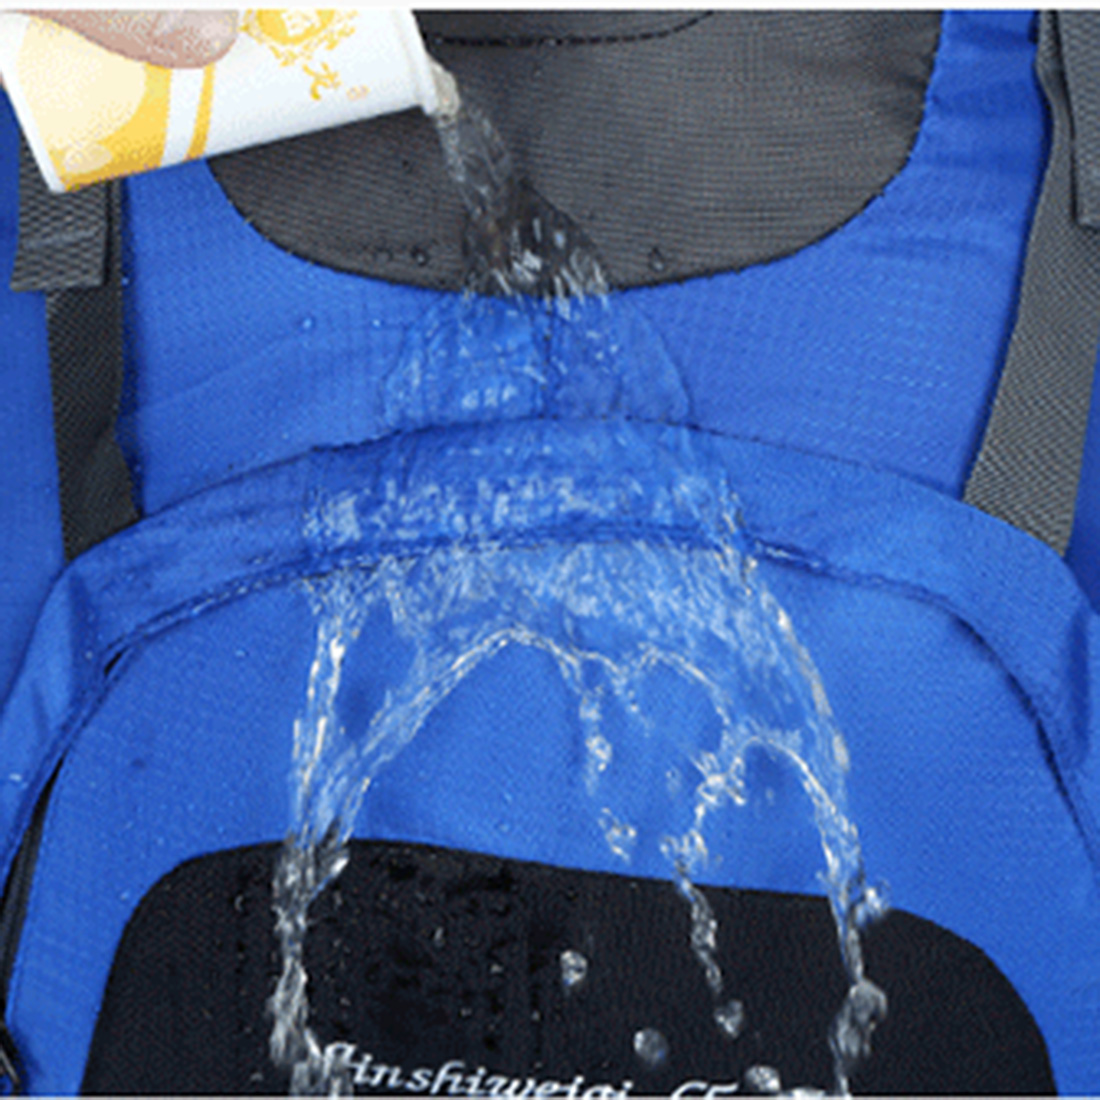 Waterproof test for the backpack